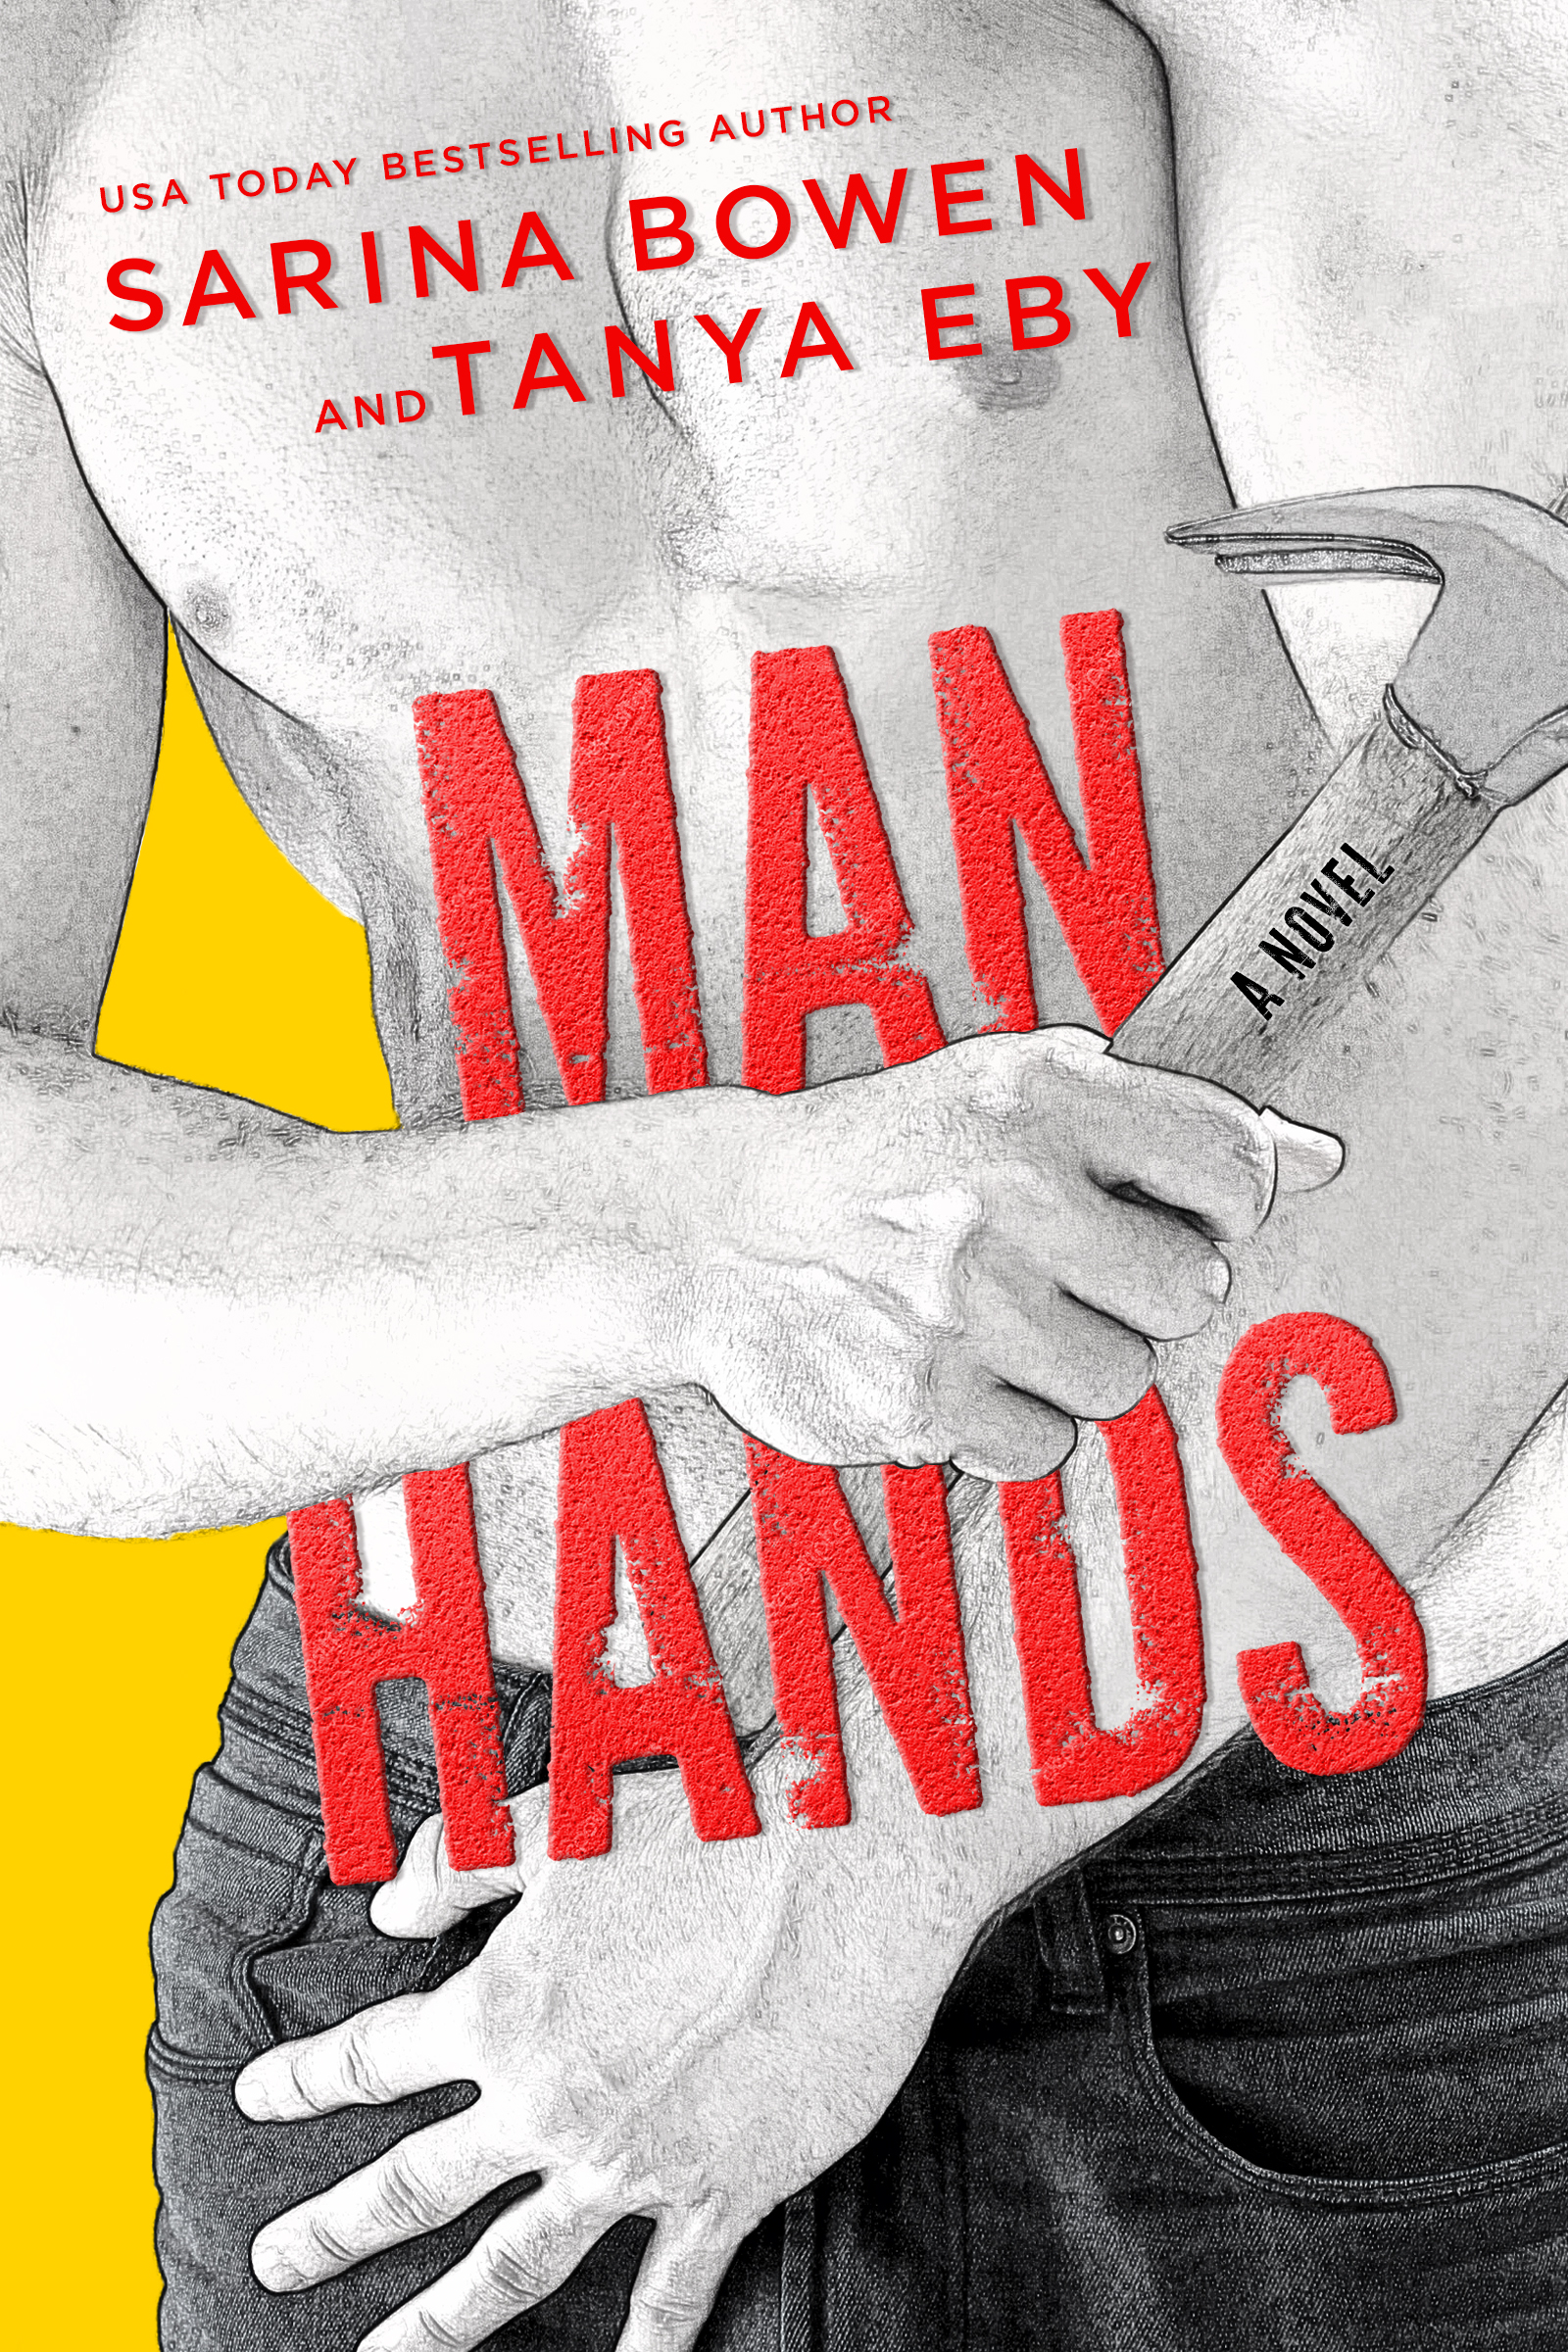 Cover Reveal – Man Hands by Sarina Bowen and Tanya Eby